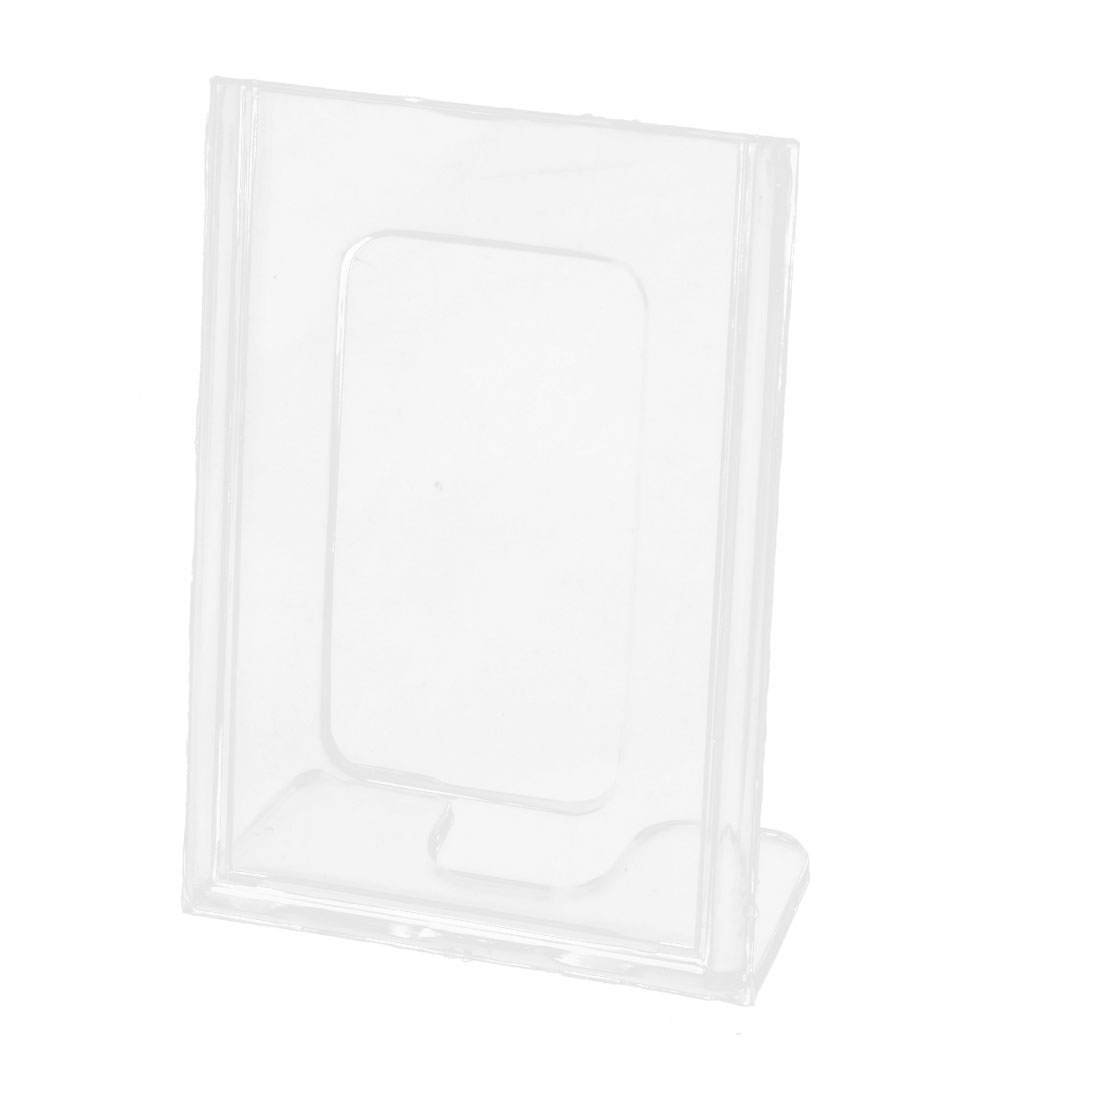 Office Counter L-Shaped Plastic Photos Display Name Business Card Holder Stand Clear